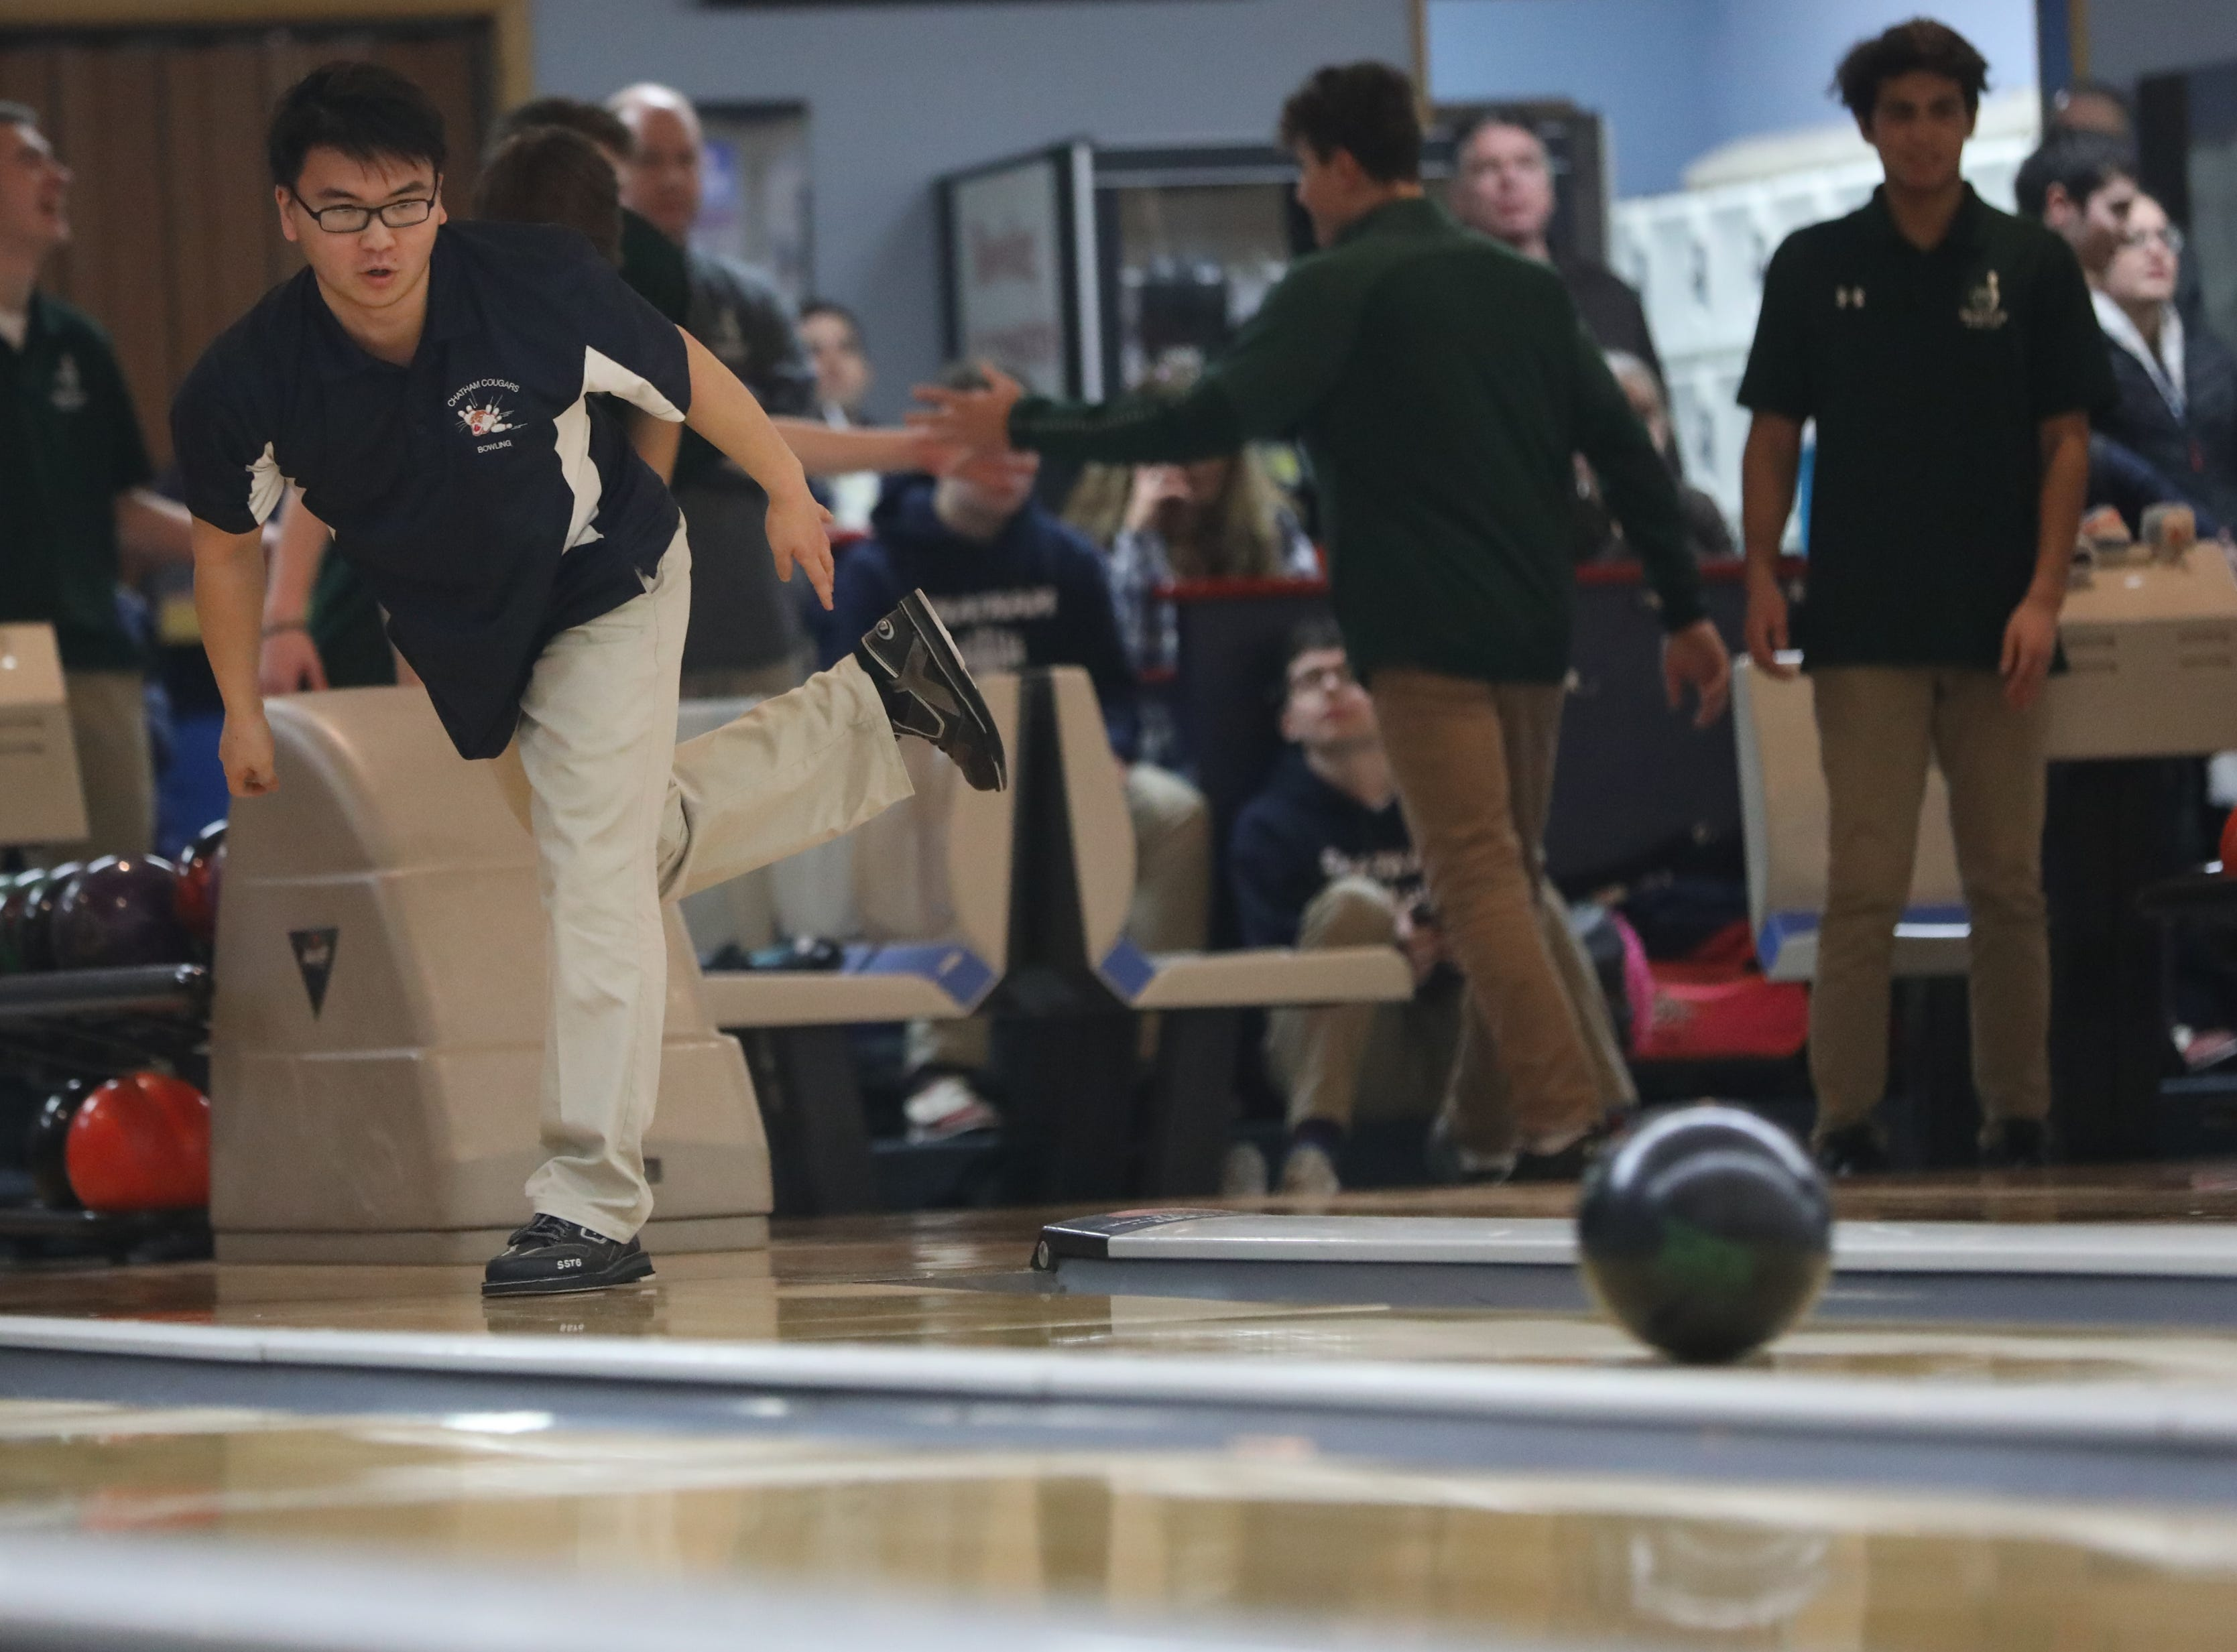 Isaac Im, of Chatham, competes at the Morris County Bowling Tournament, in Rockaway. Thursday, January 24, 2019